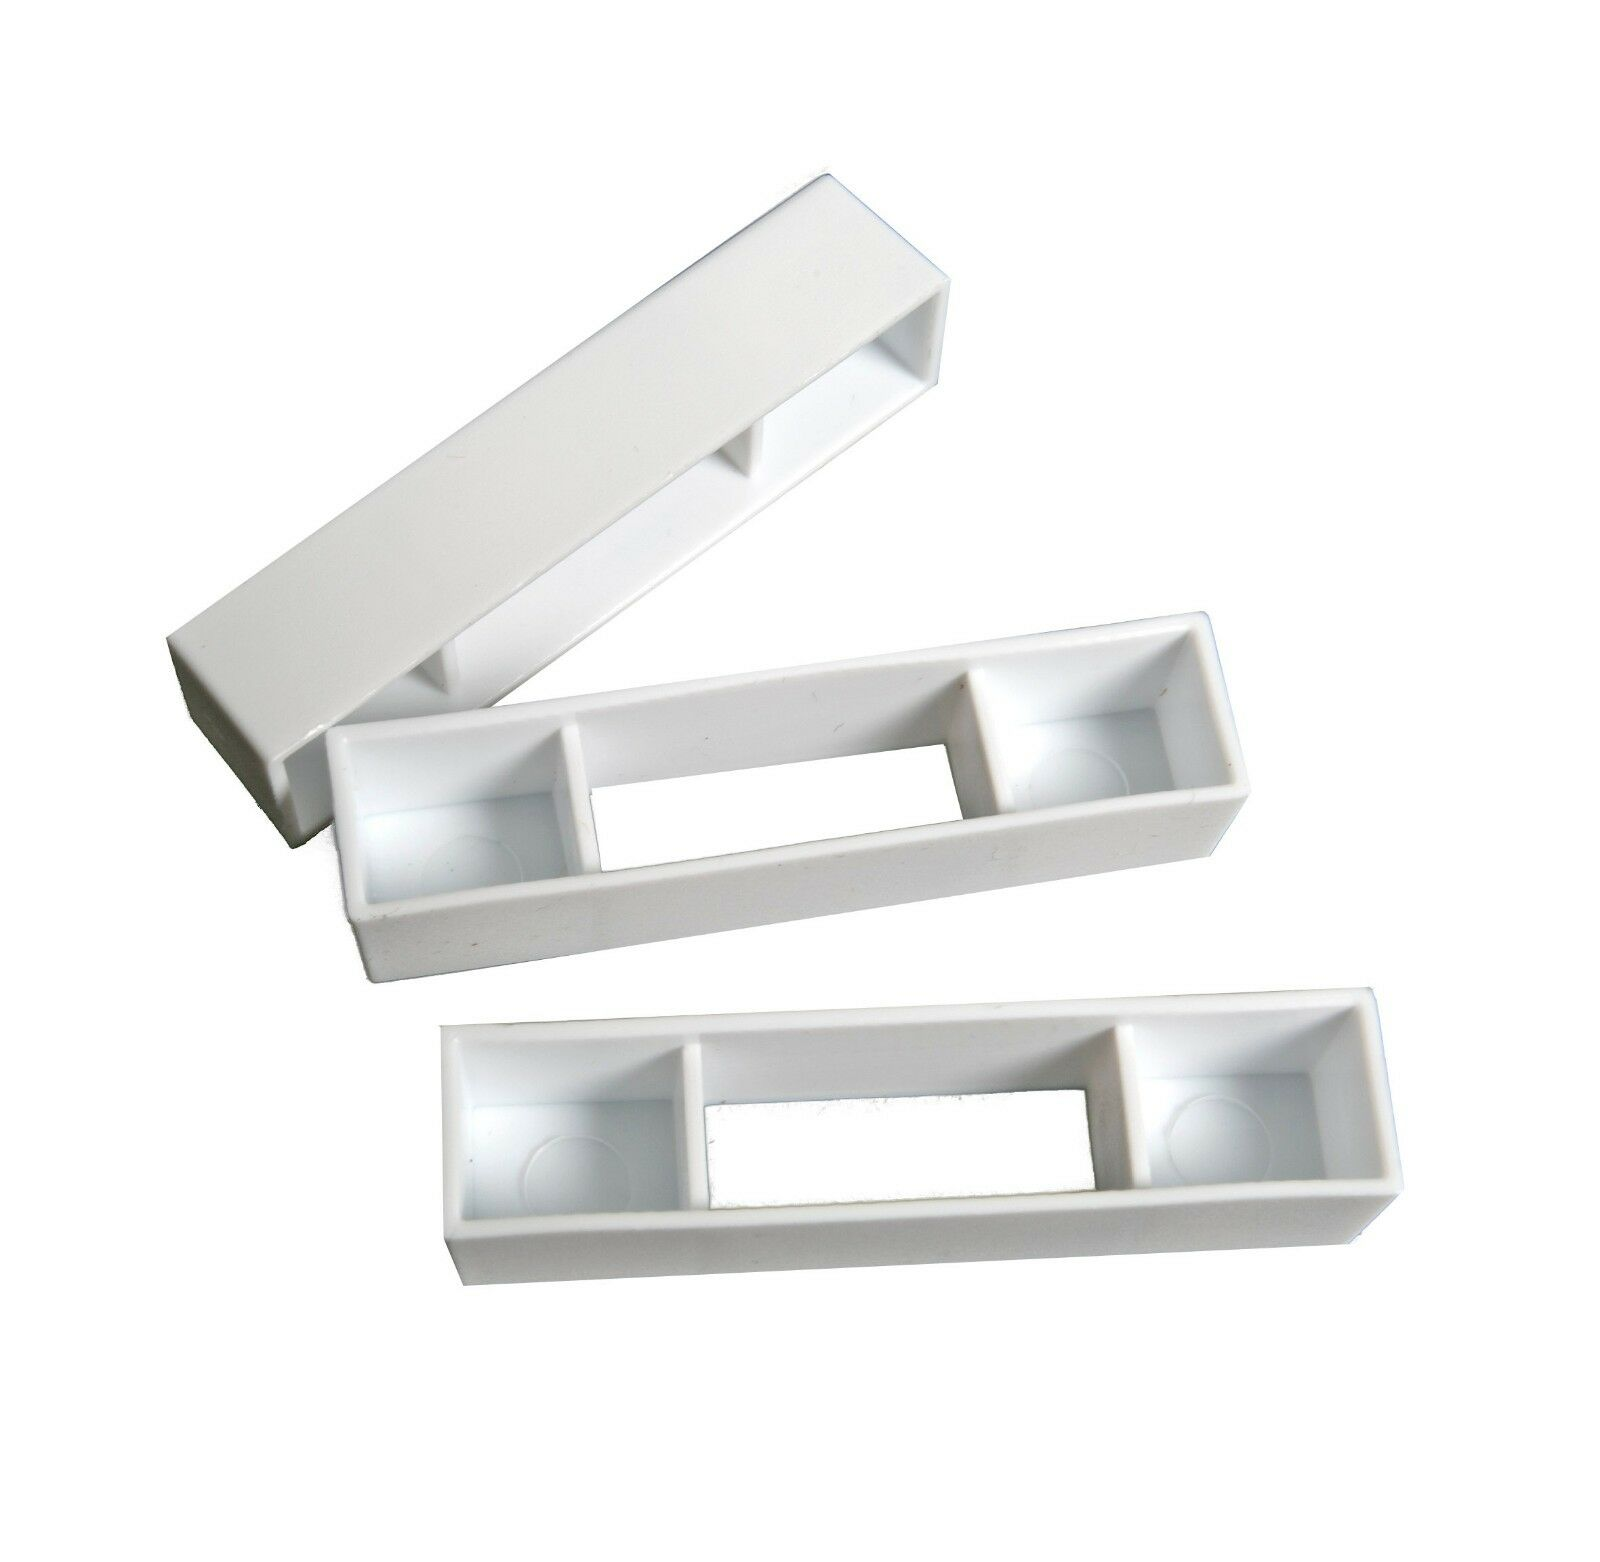 100 Wide beehive plastic frame ends / spacers